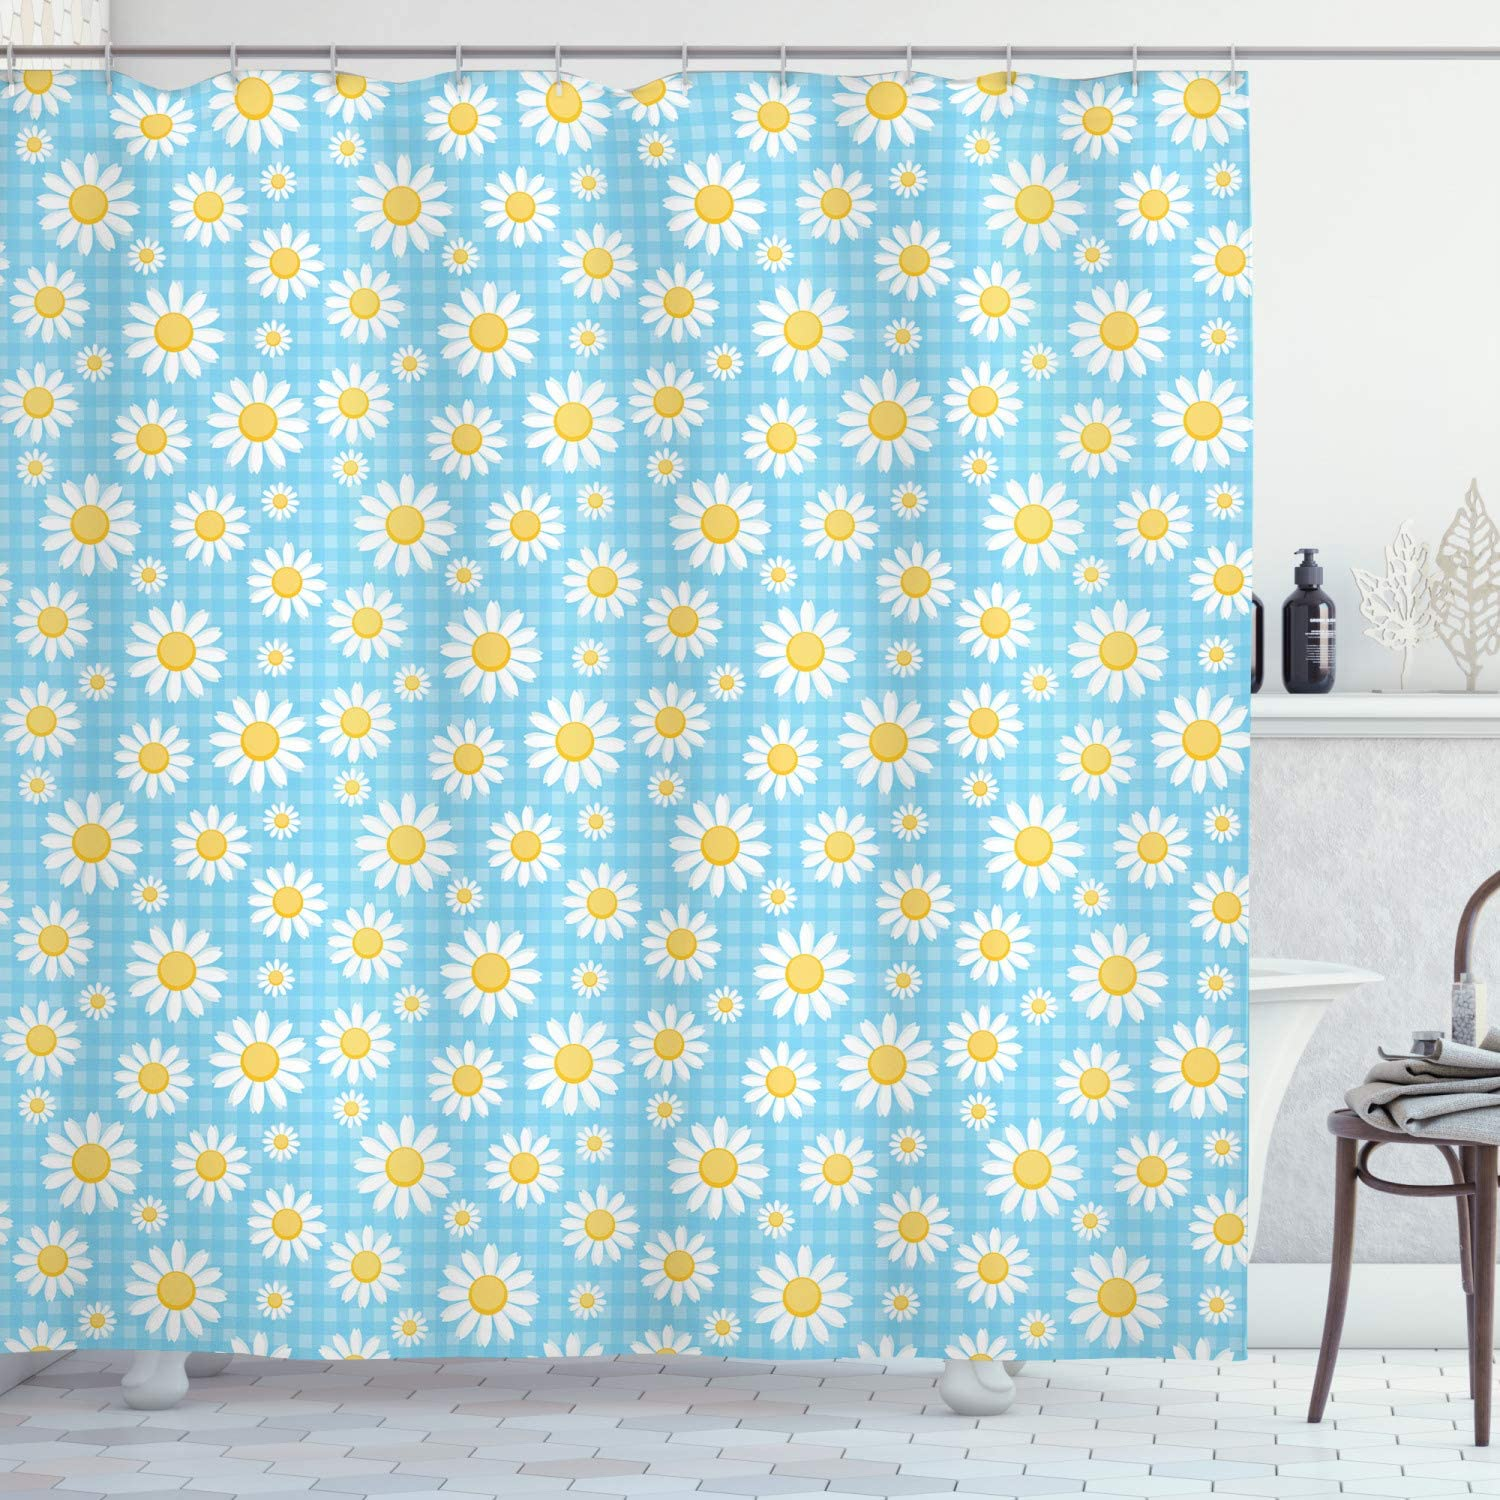 Ambesonne Flower Shower Curtain, Camomiles on Checkered Background Classics Timeless Pattern Tropic Plants, Cloth Fabric Bathroom Decor Set with Hooks, 70